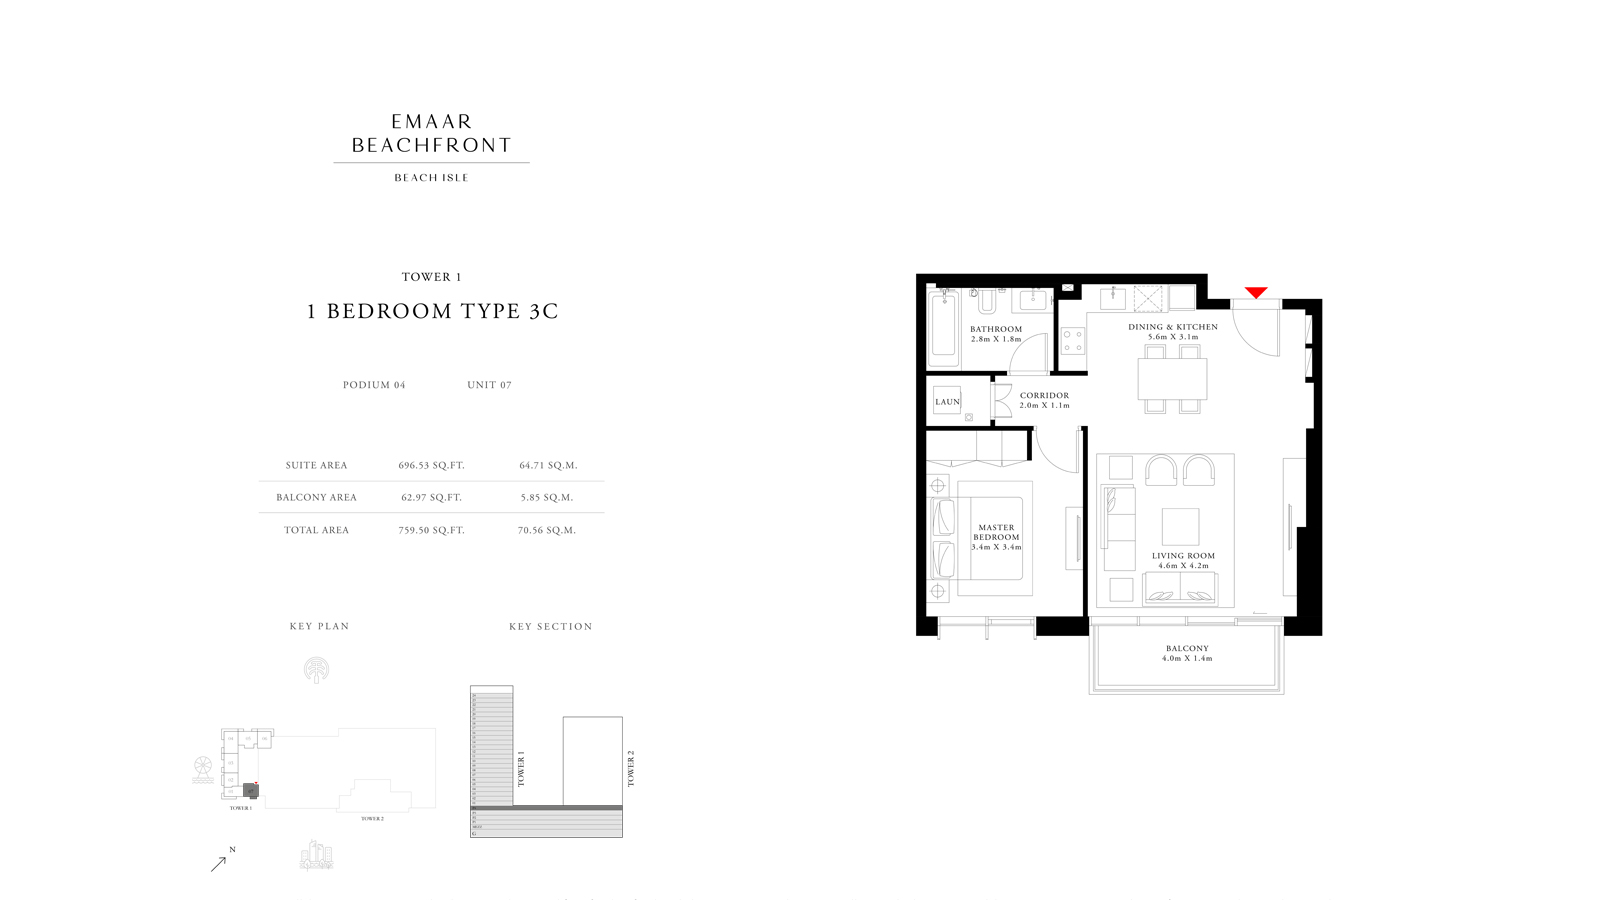 1 Bedroom Type 3C Tower 1, Size 759    sq. ft.